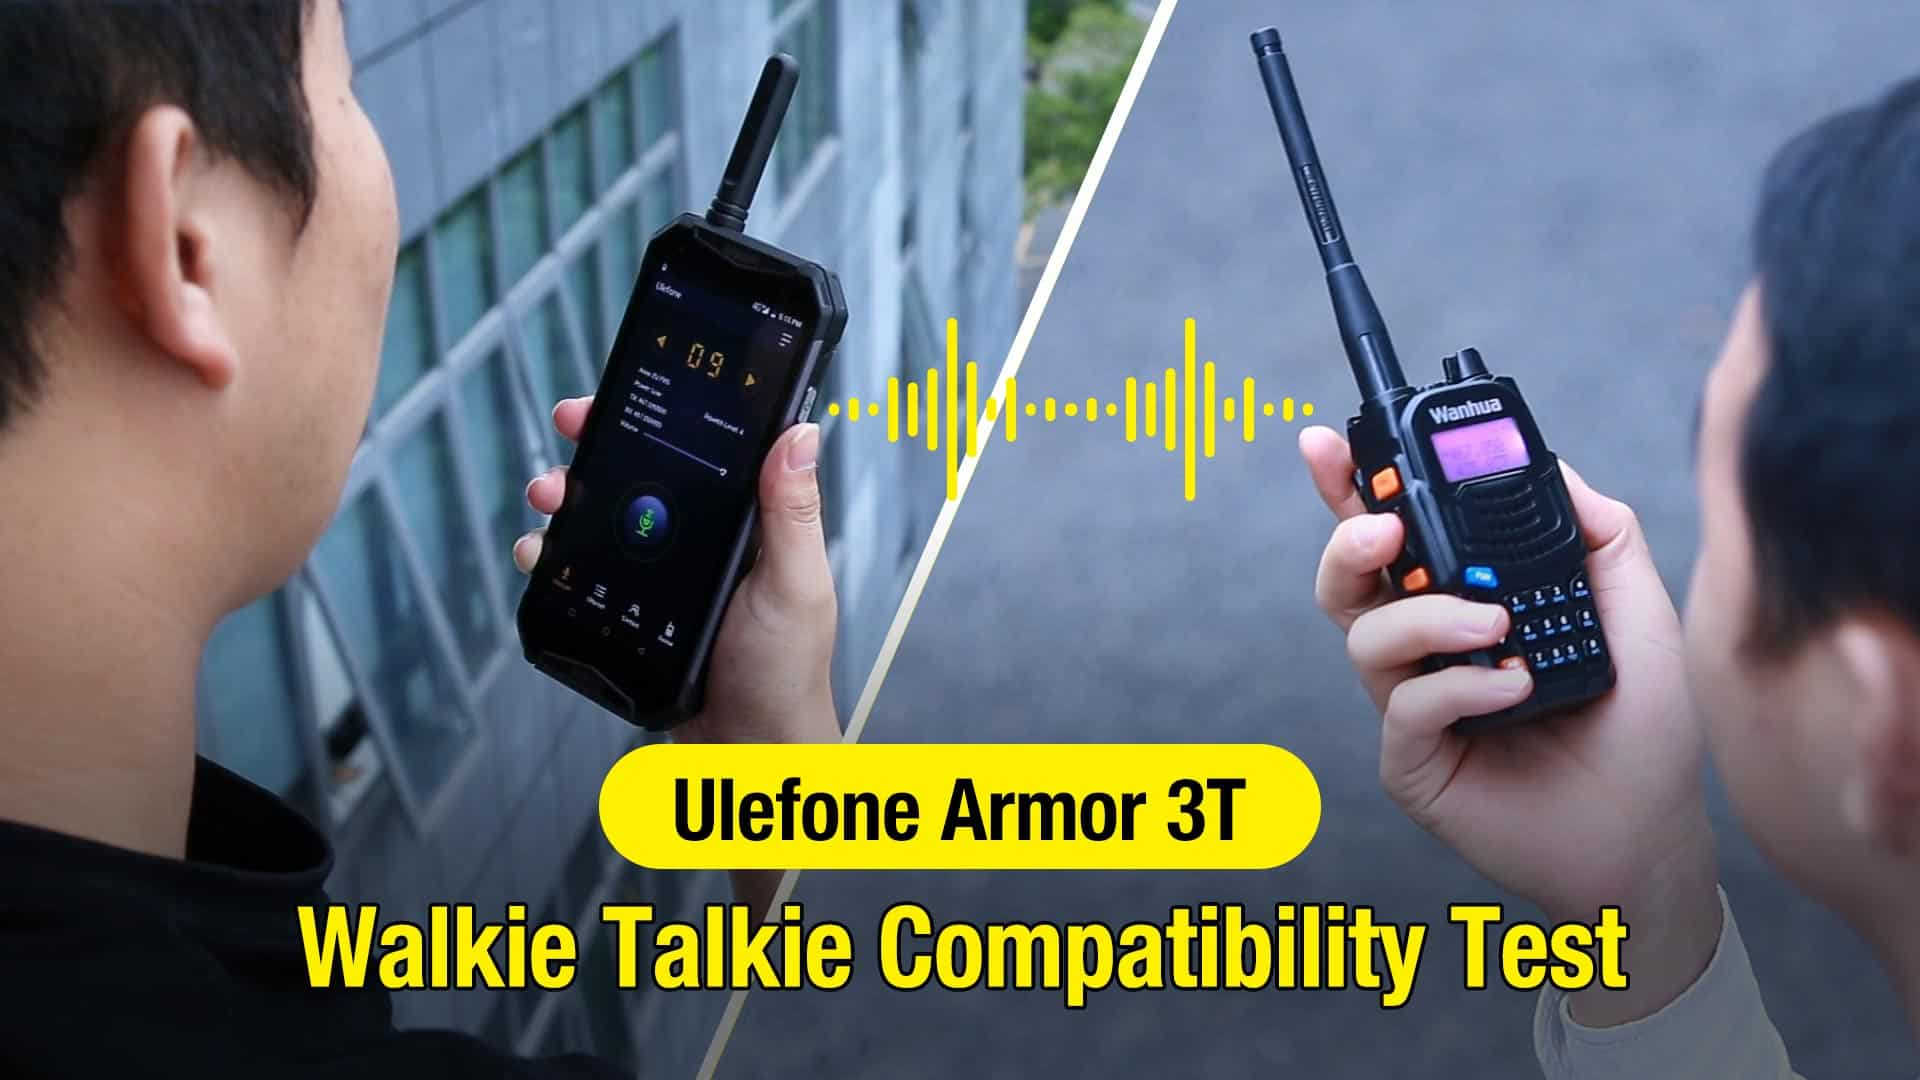 Ulefone Armor 3T walkie talkie test 1